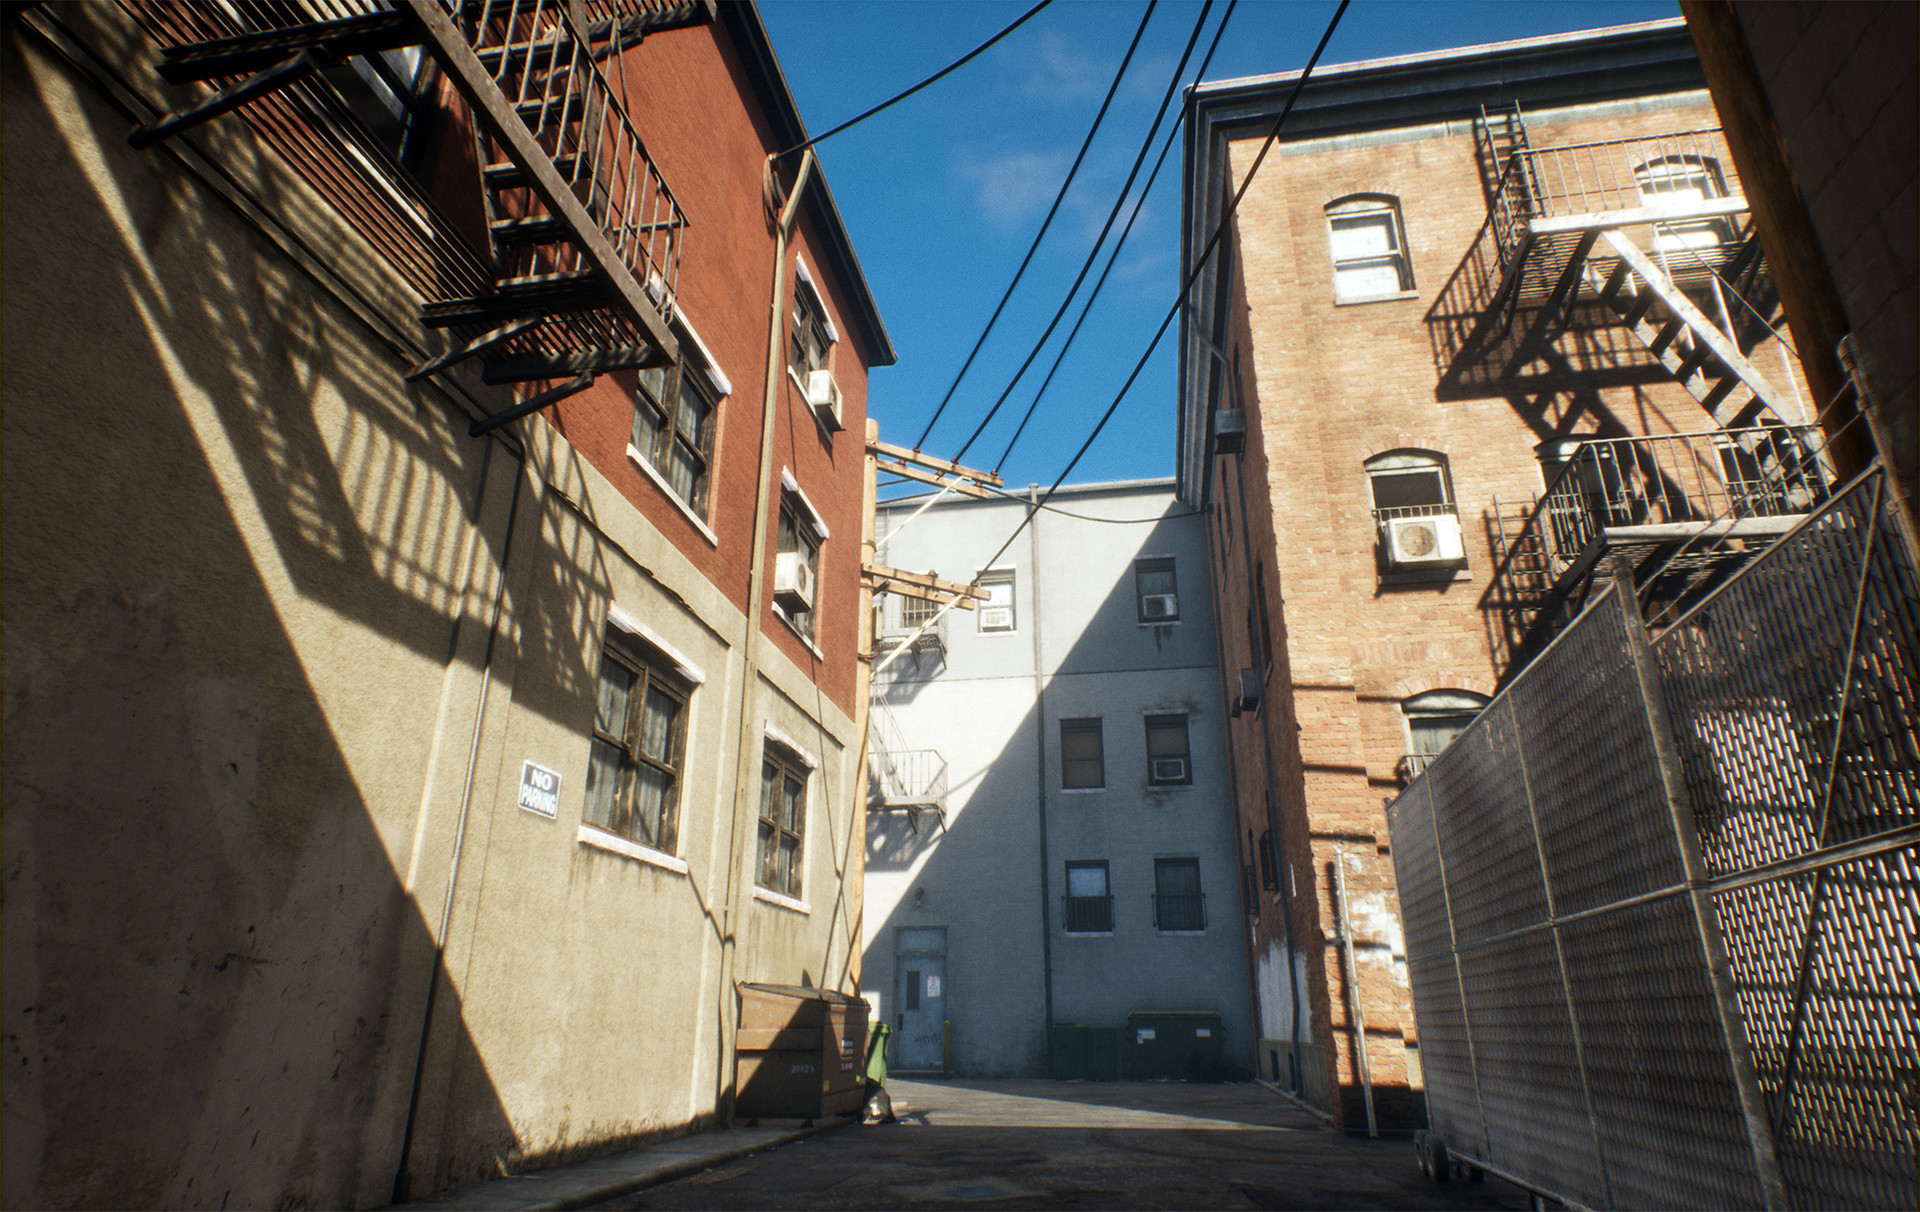 Kurt kupser alley render 01